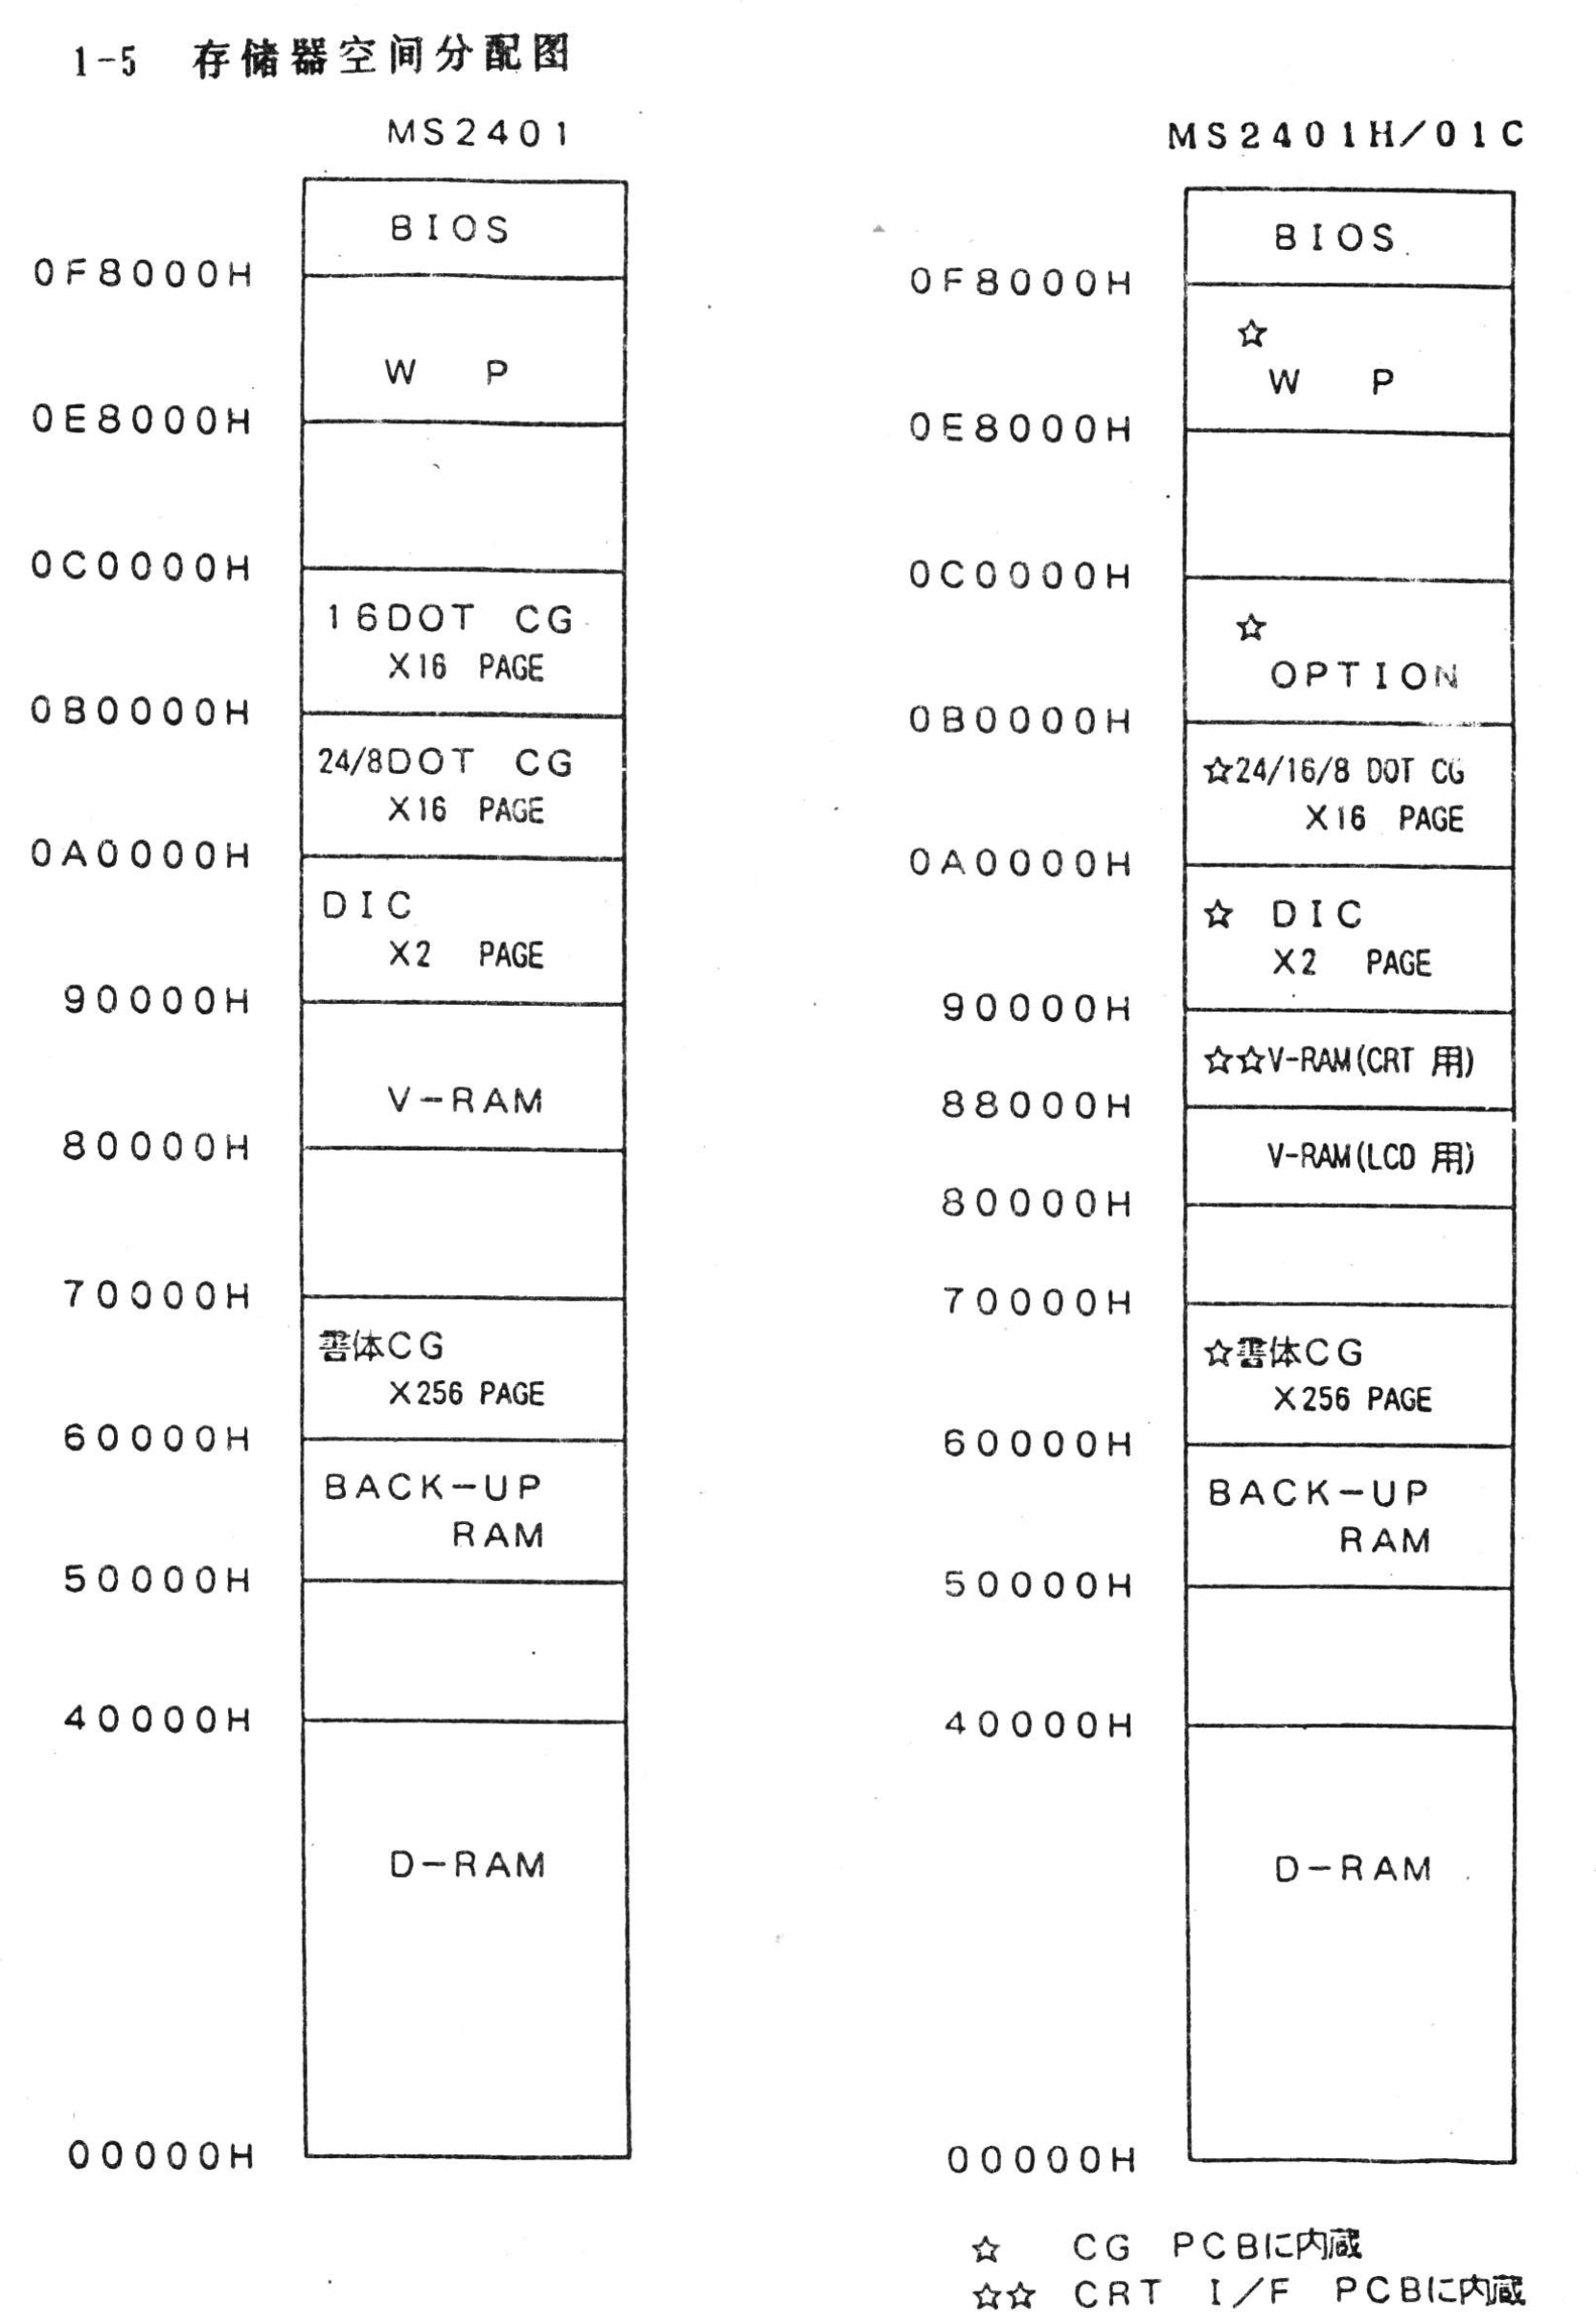 Memory Map for MS-2401H